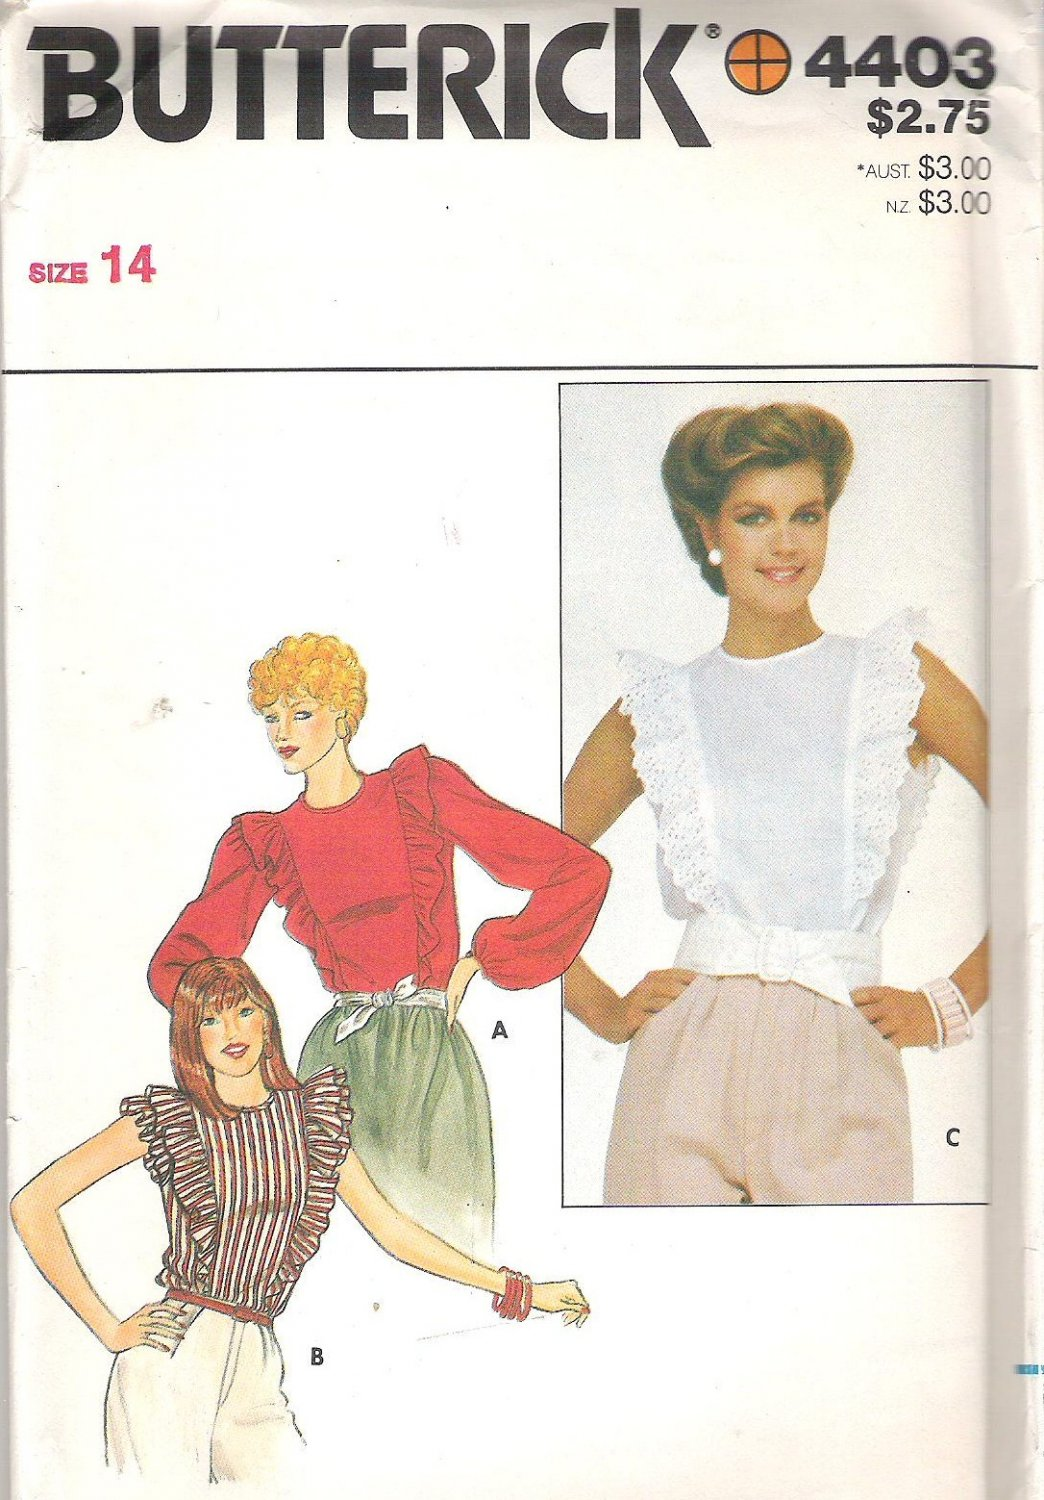 Butterick 4403 Pattern Blouse Shirt Top with Ruffle Long Sleeves or Sleeveless  Size 14  Cut